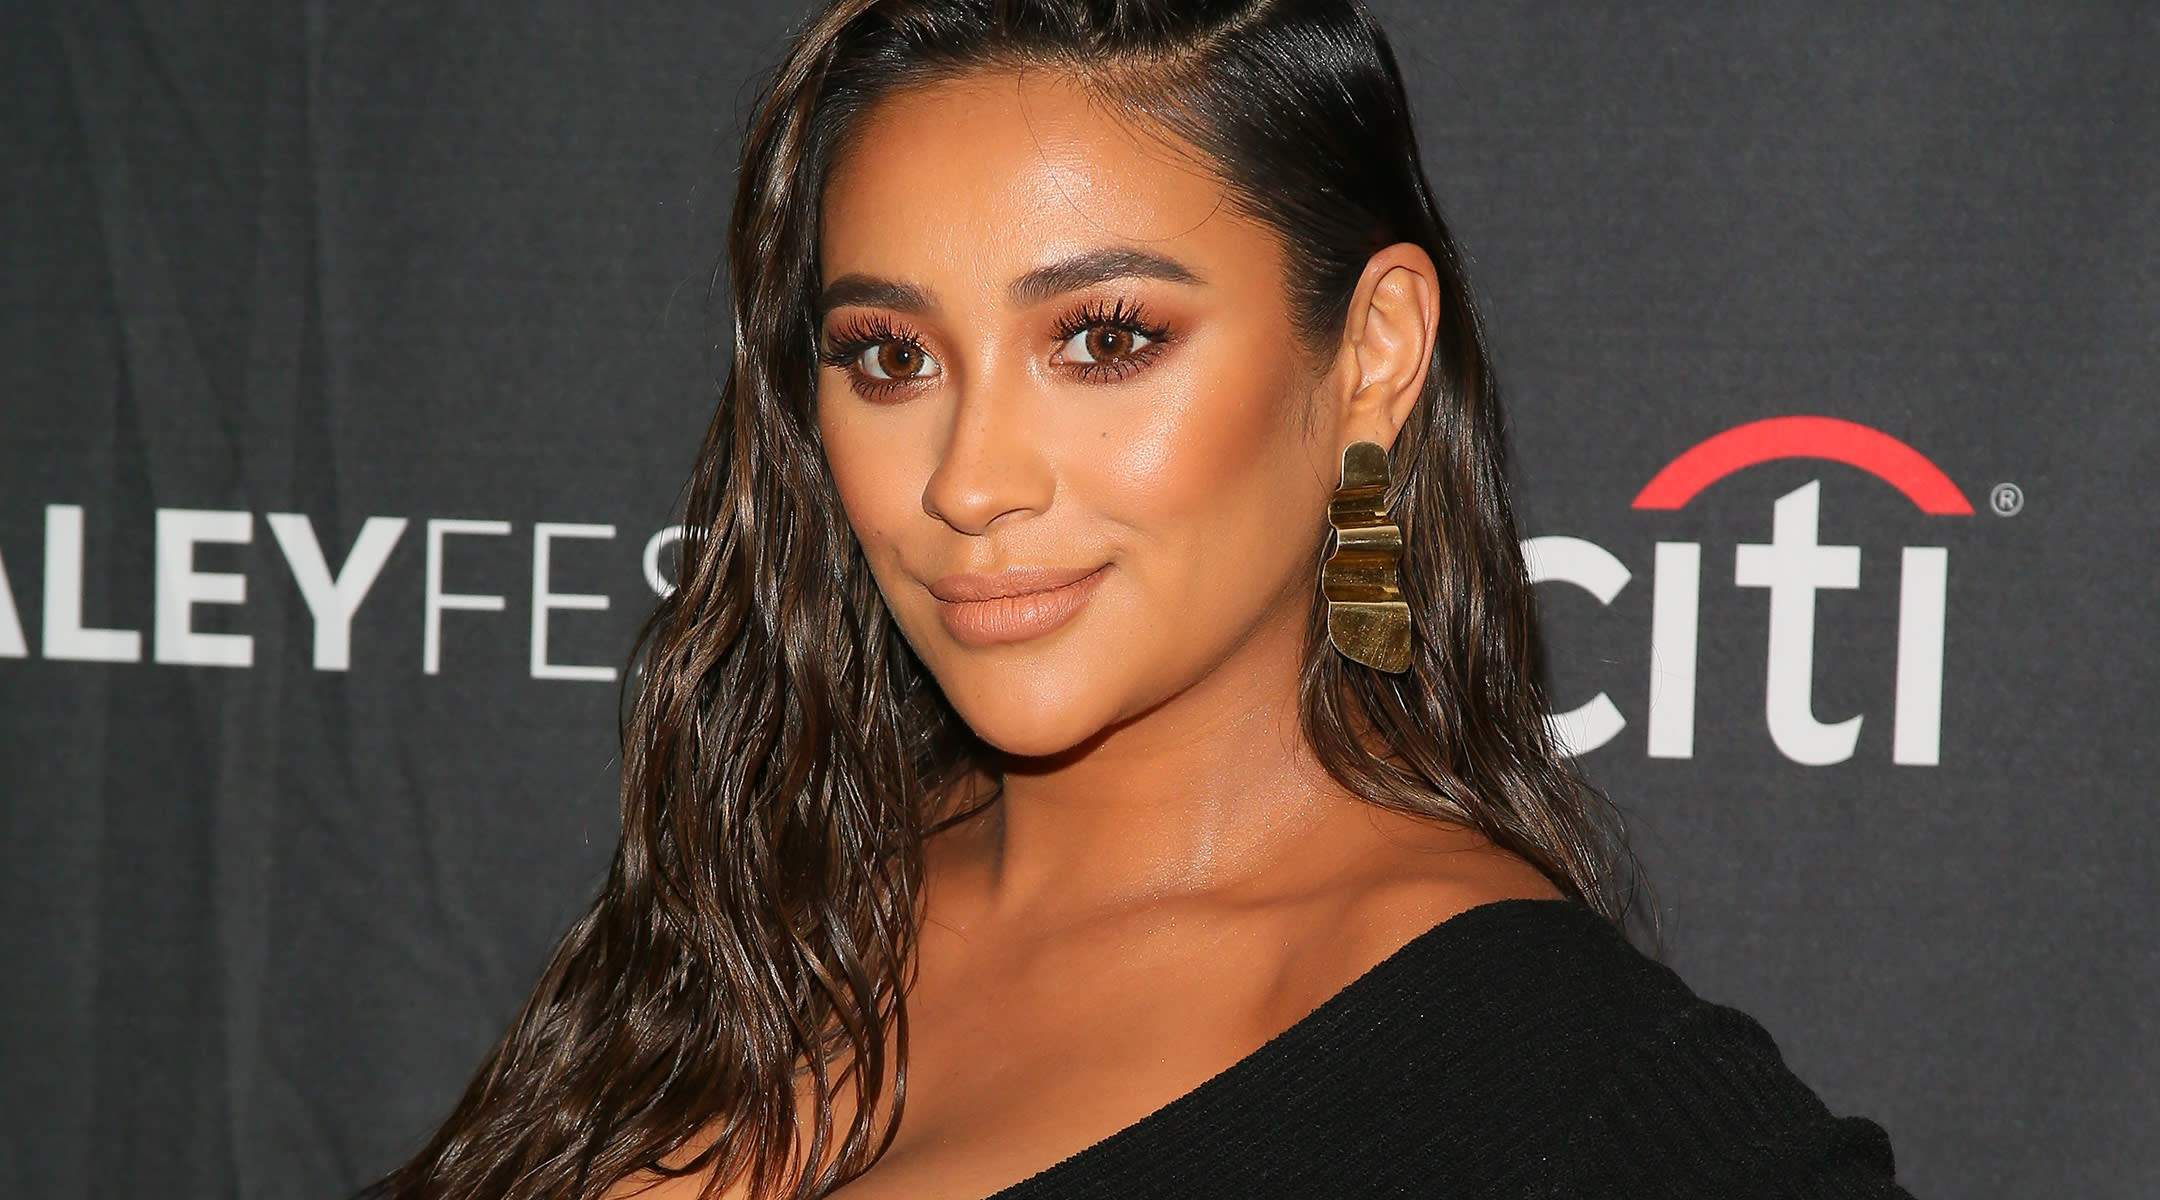 Shay Mitchell poses on red carpet